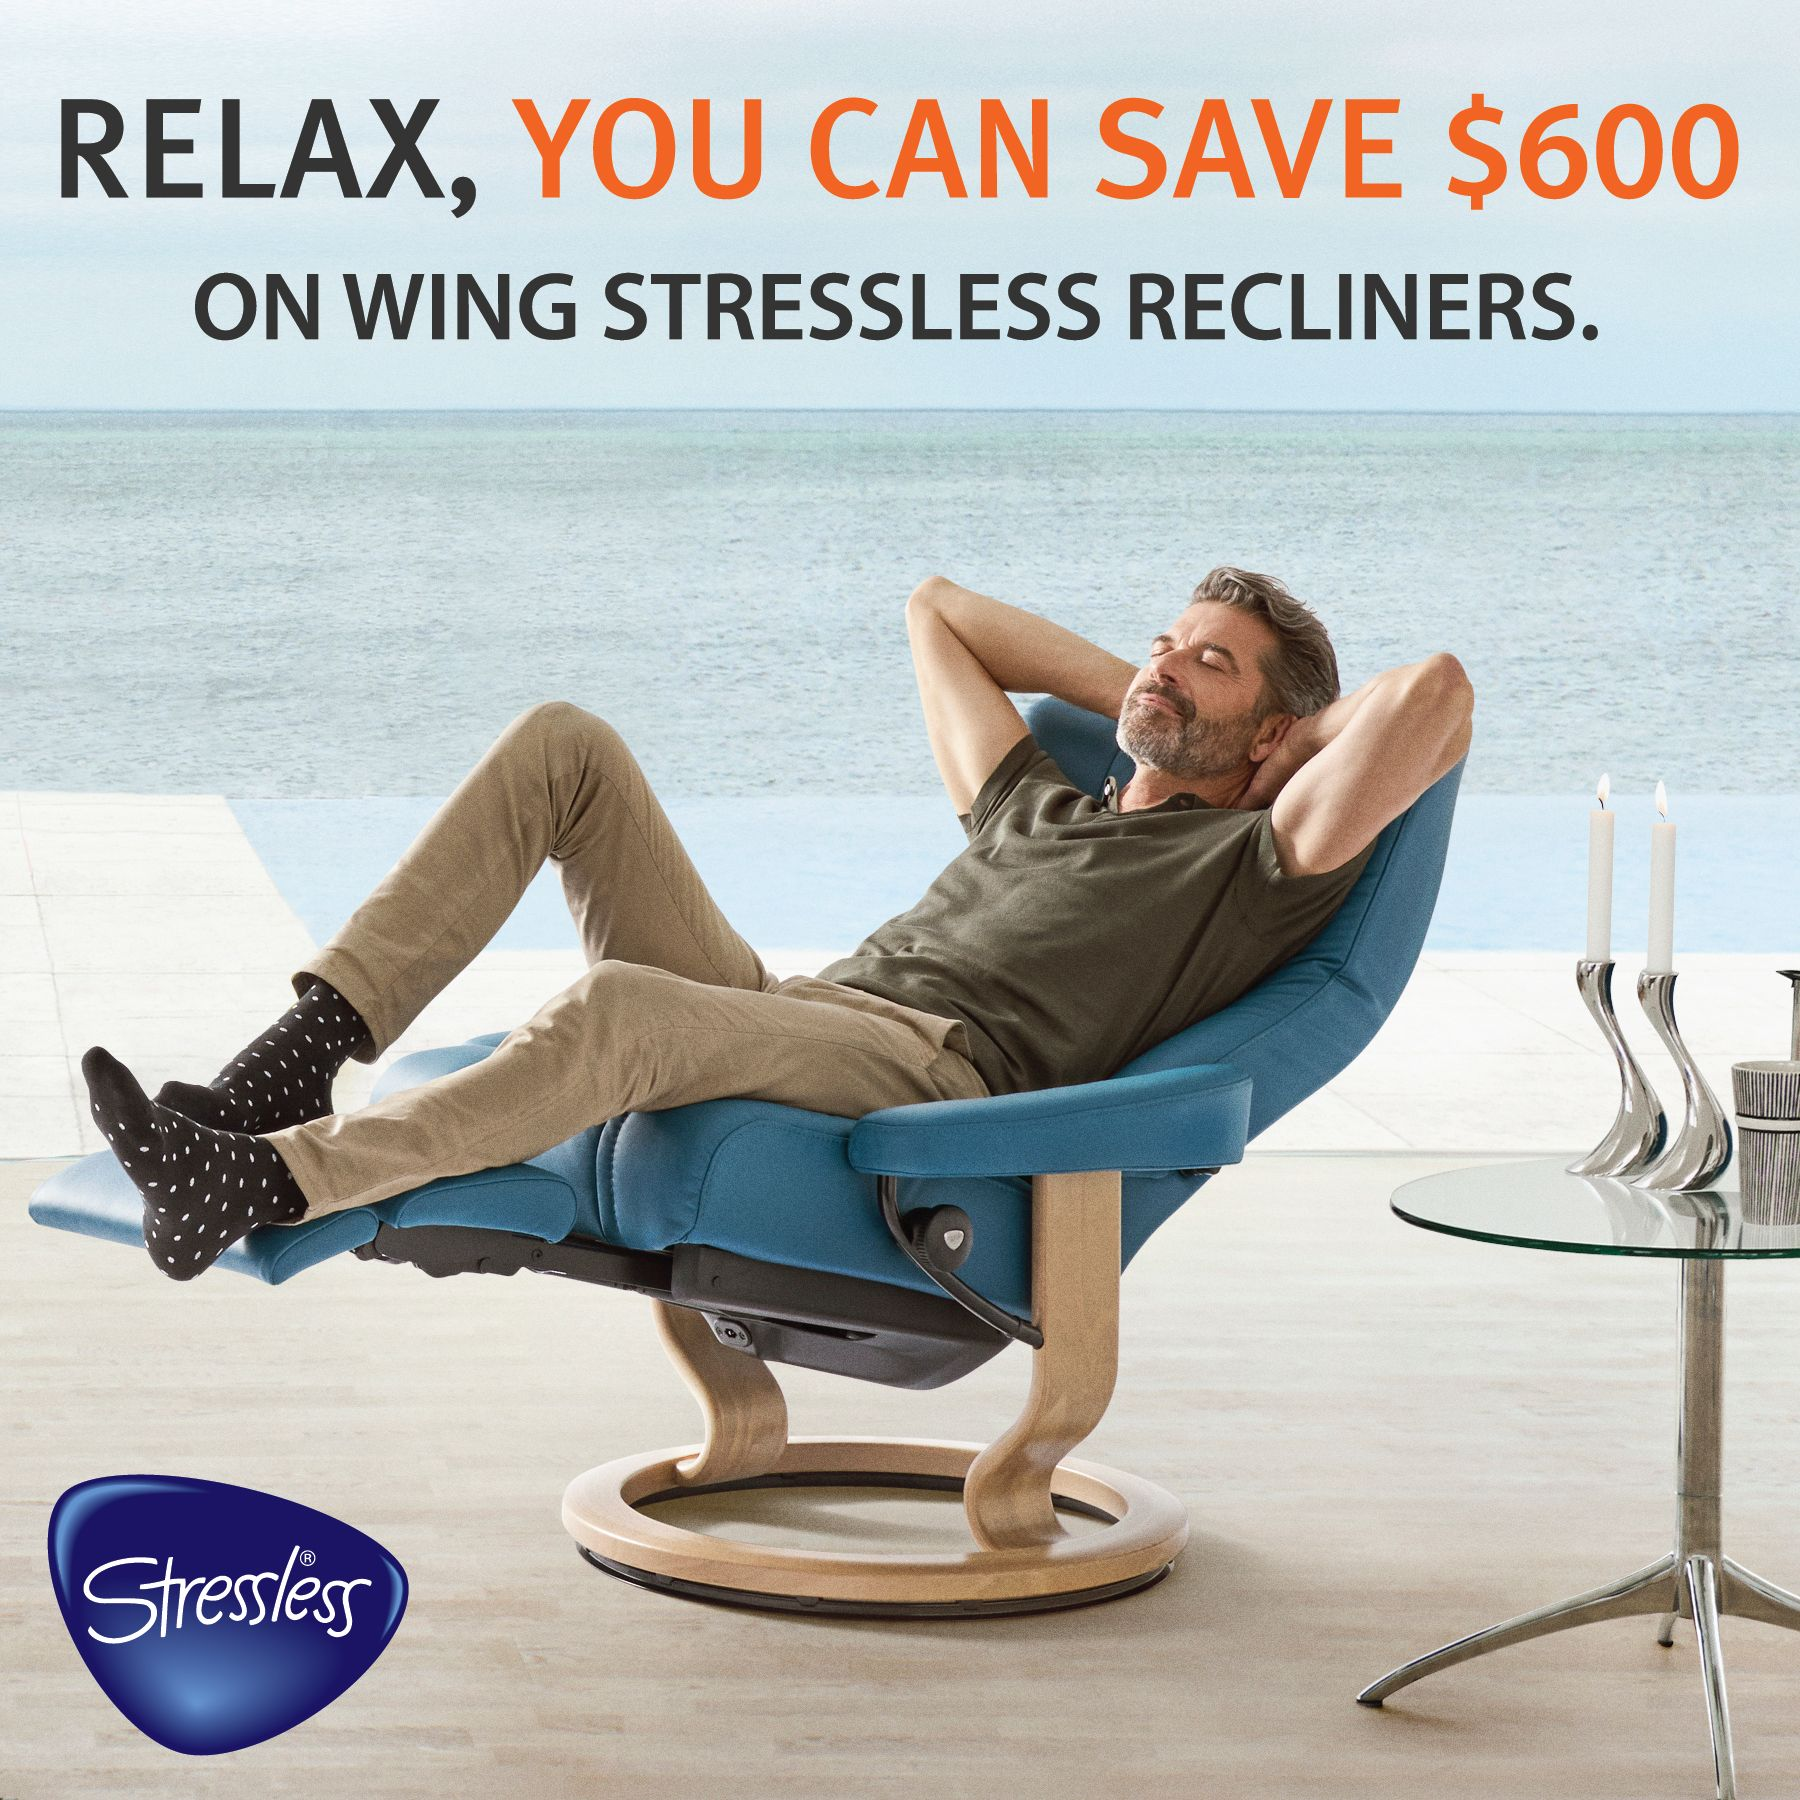 Our Stressless Wing Recliners Sale is going on now!